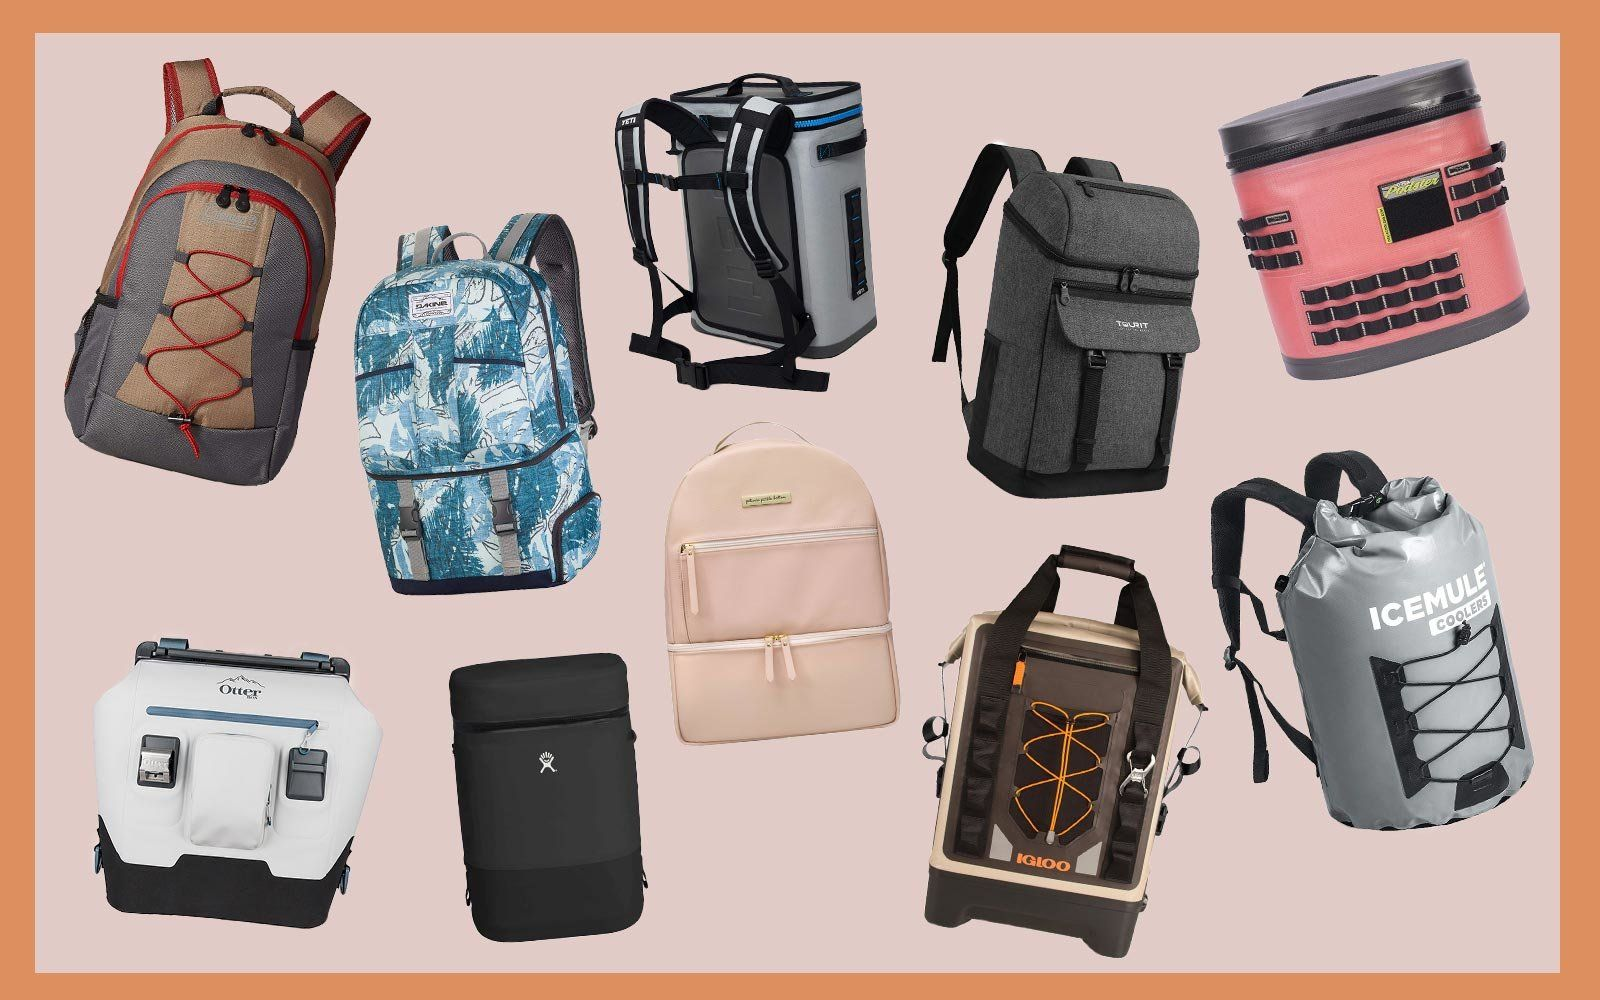 It S Time To Replace Your Cooler With One Of These Awesome Insulated Backpacks Insulated Backpack Cool Backpacks Backpacks